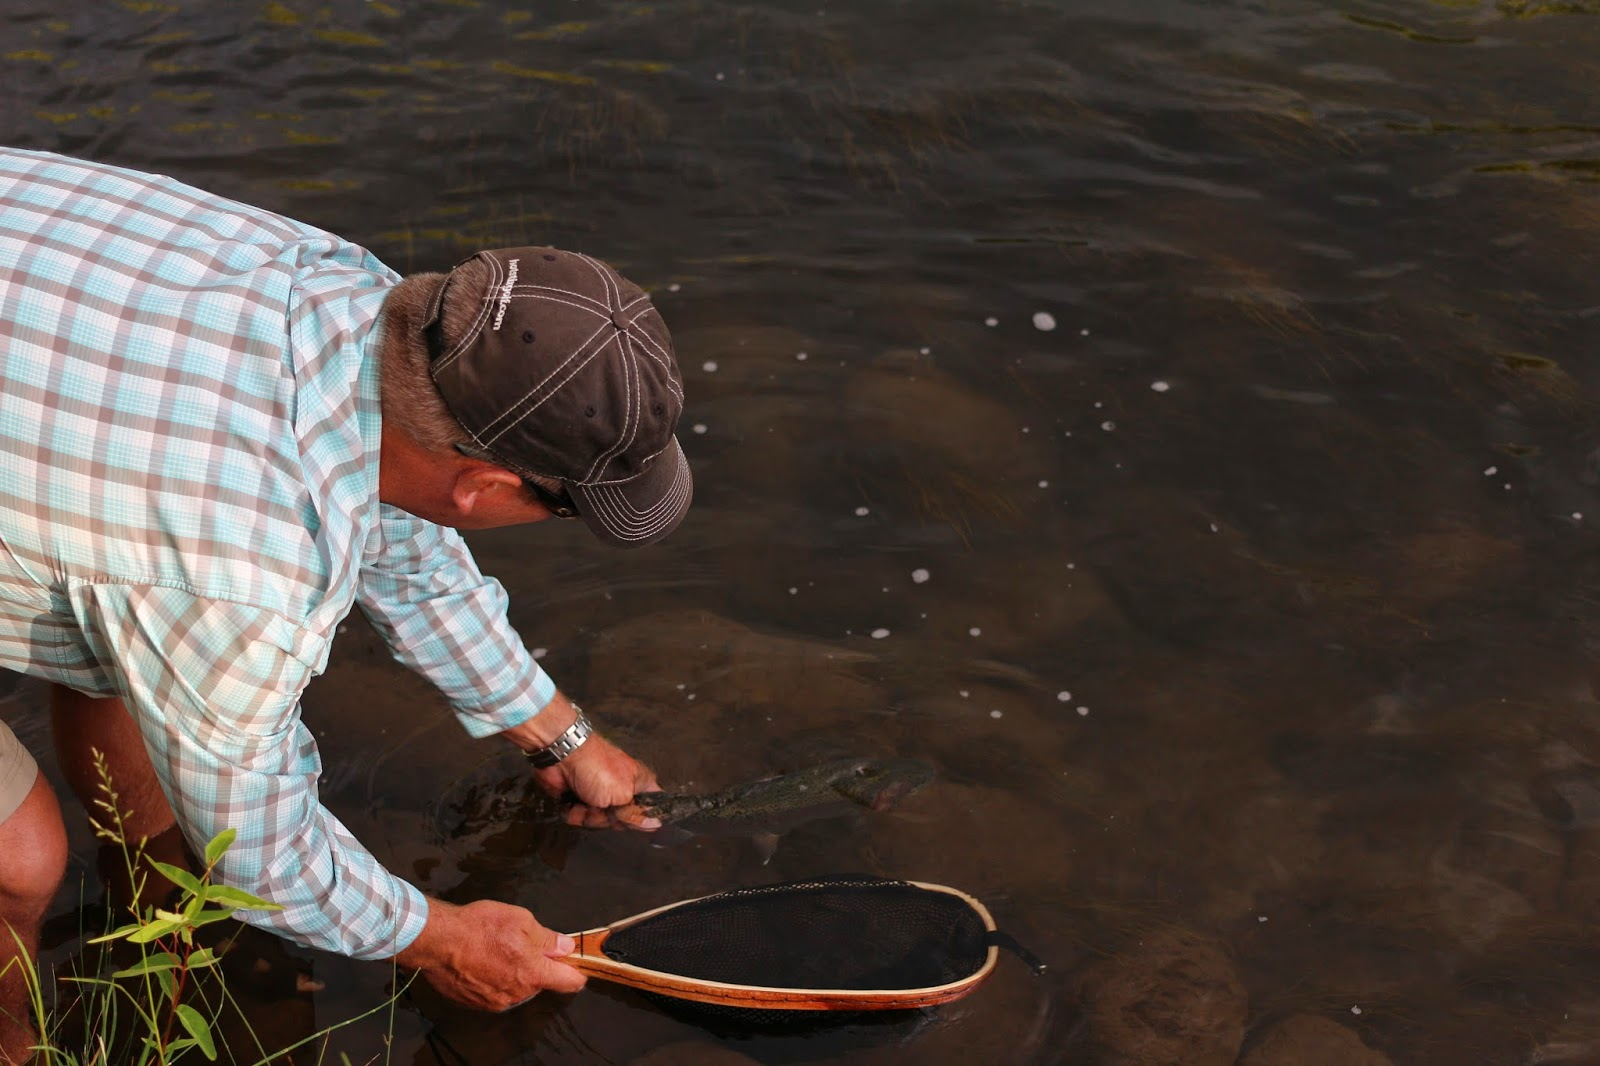 Roaring+fork+river+fly+fishing+with+Jay+Scott+Outdoors+3.JPG